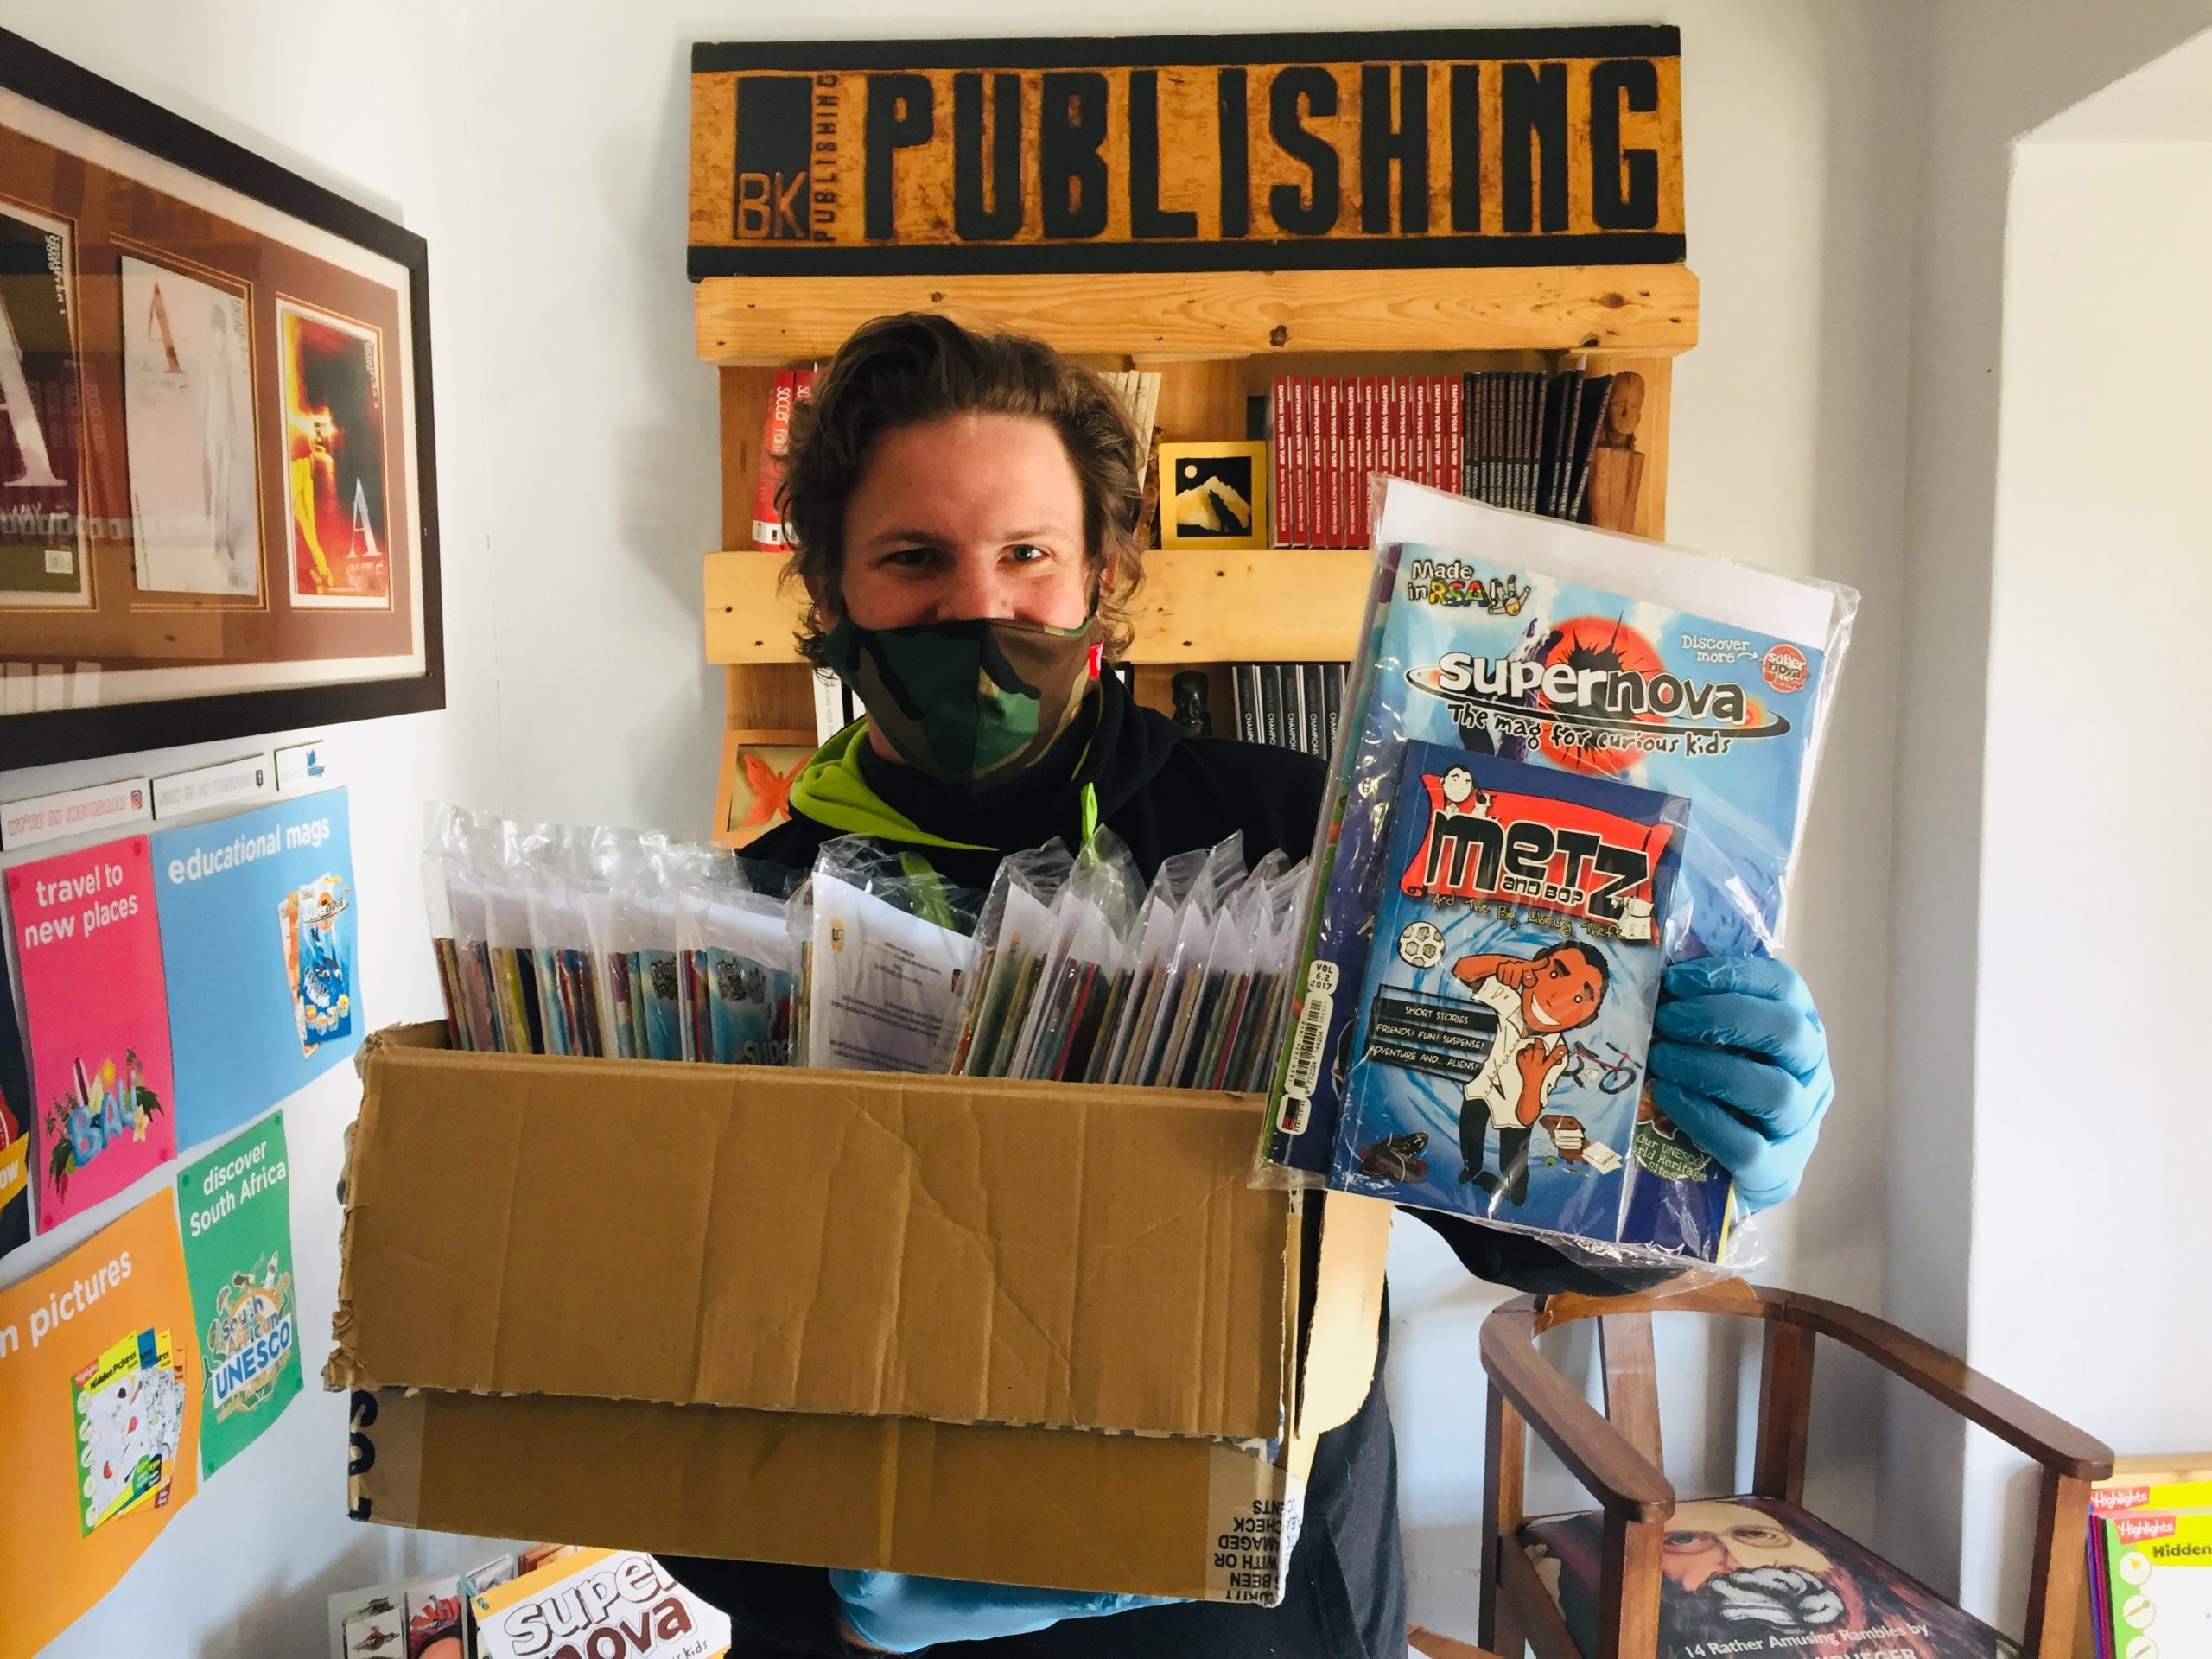 Publisher Benoit Knox holding up a box of Food for Thought magazine and book packs.